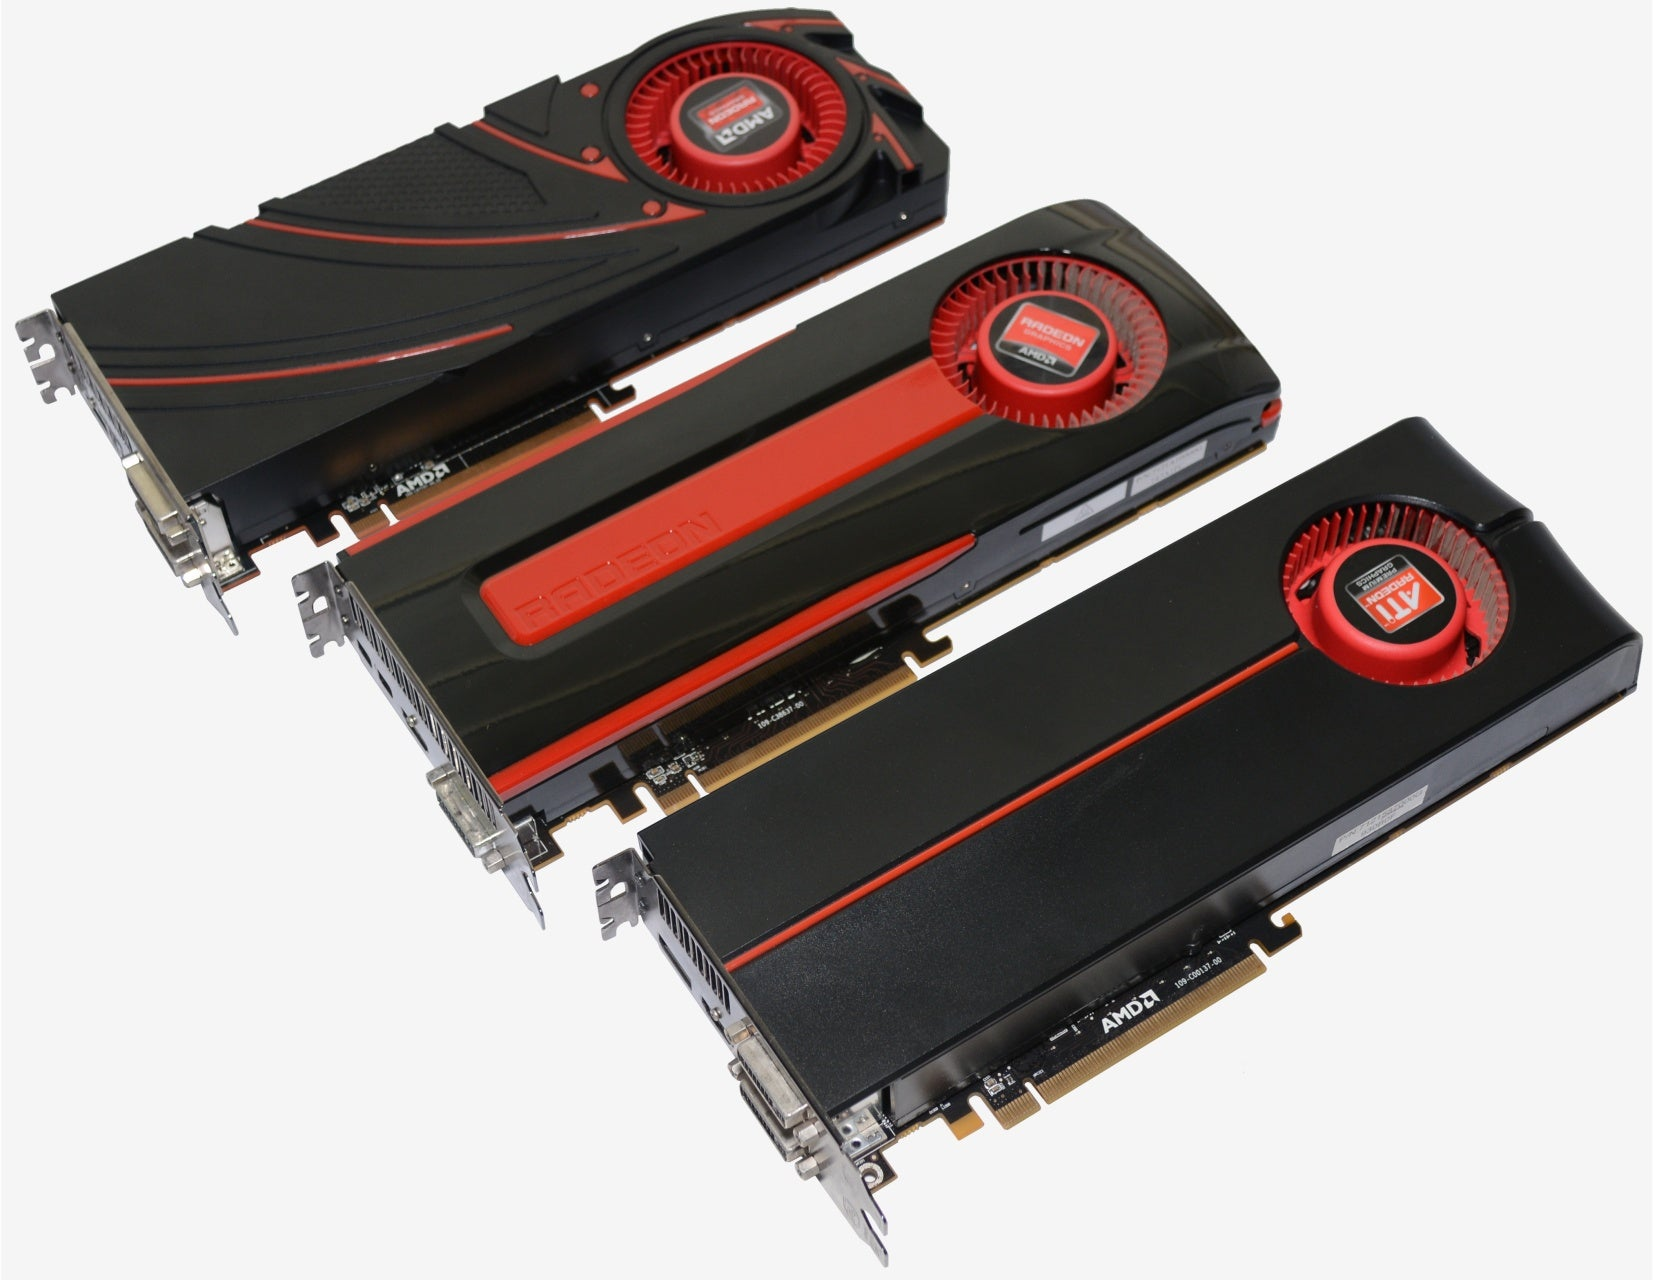 Then And Now: Five Generations Of Radeon Graphics Compared